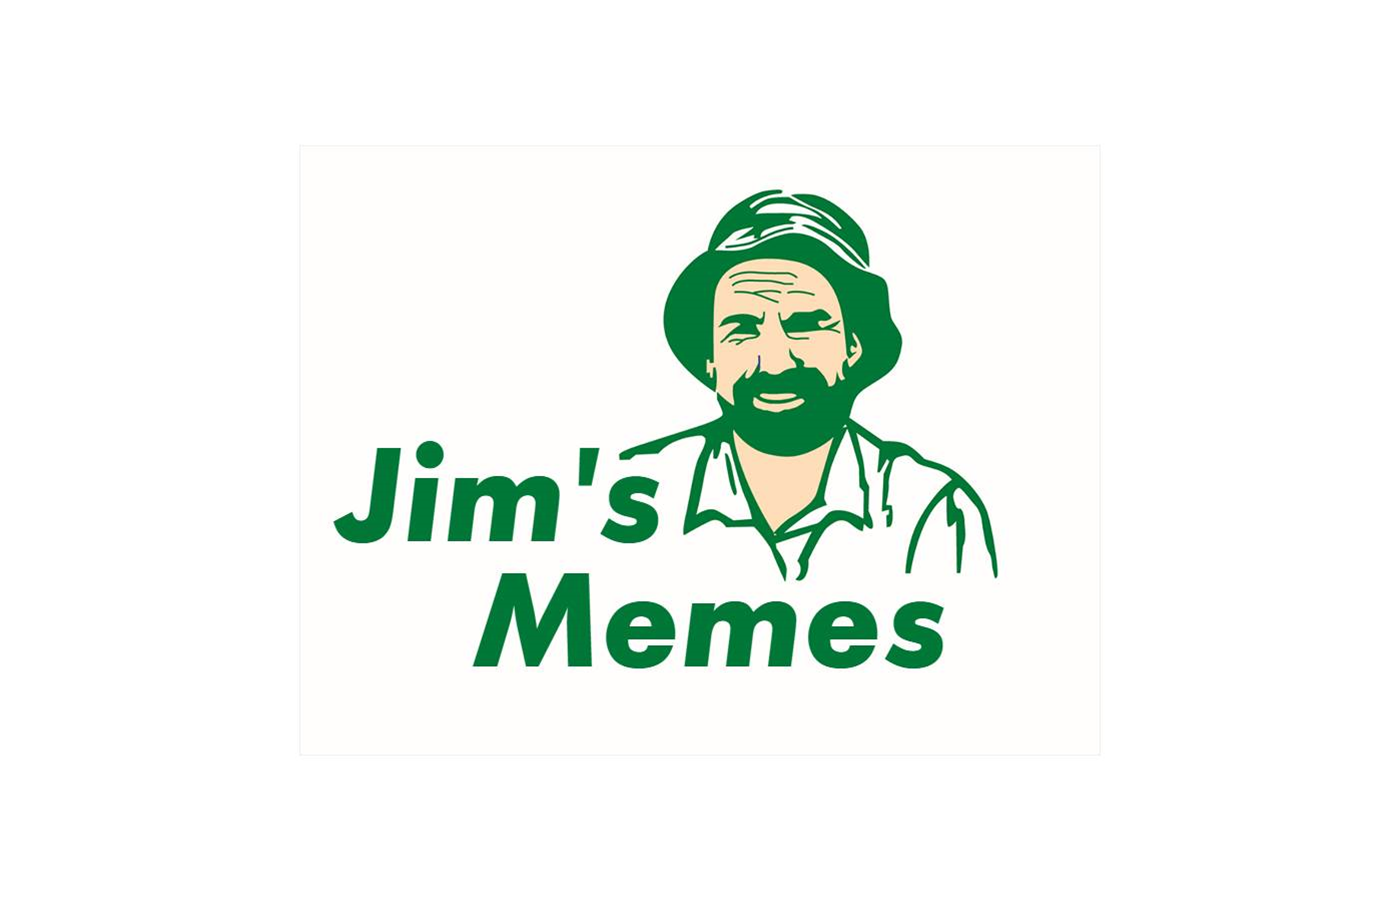 April 1 jokes are hard - so we outsourced it to Jim's Group